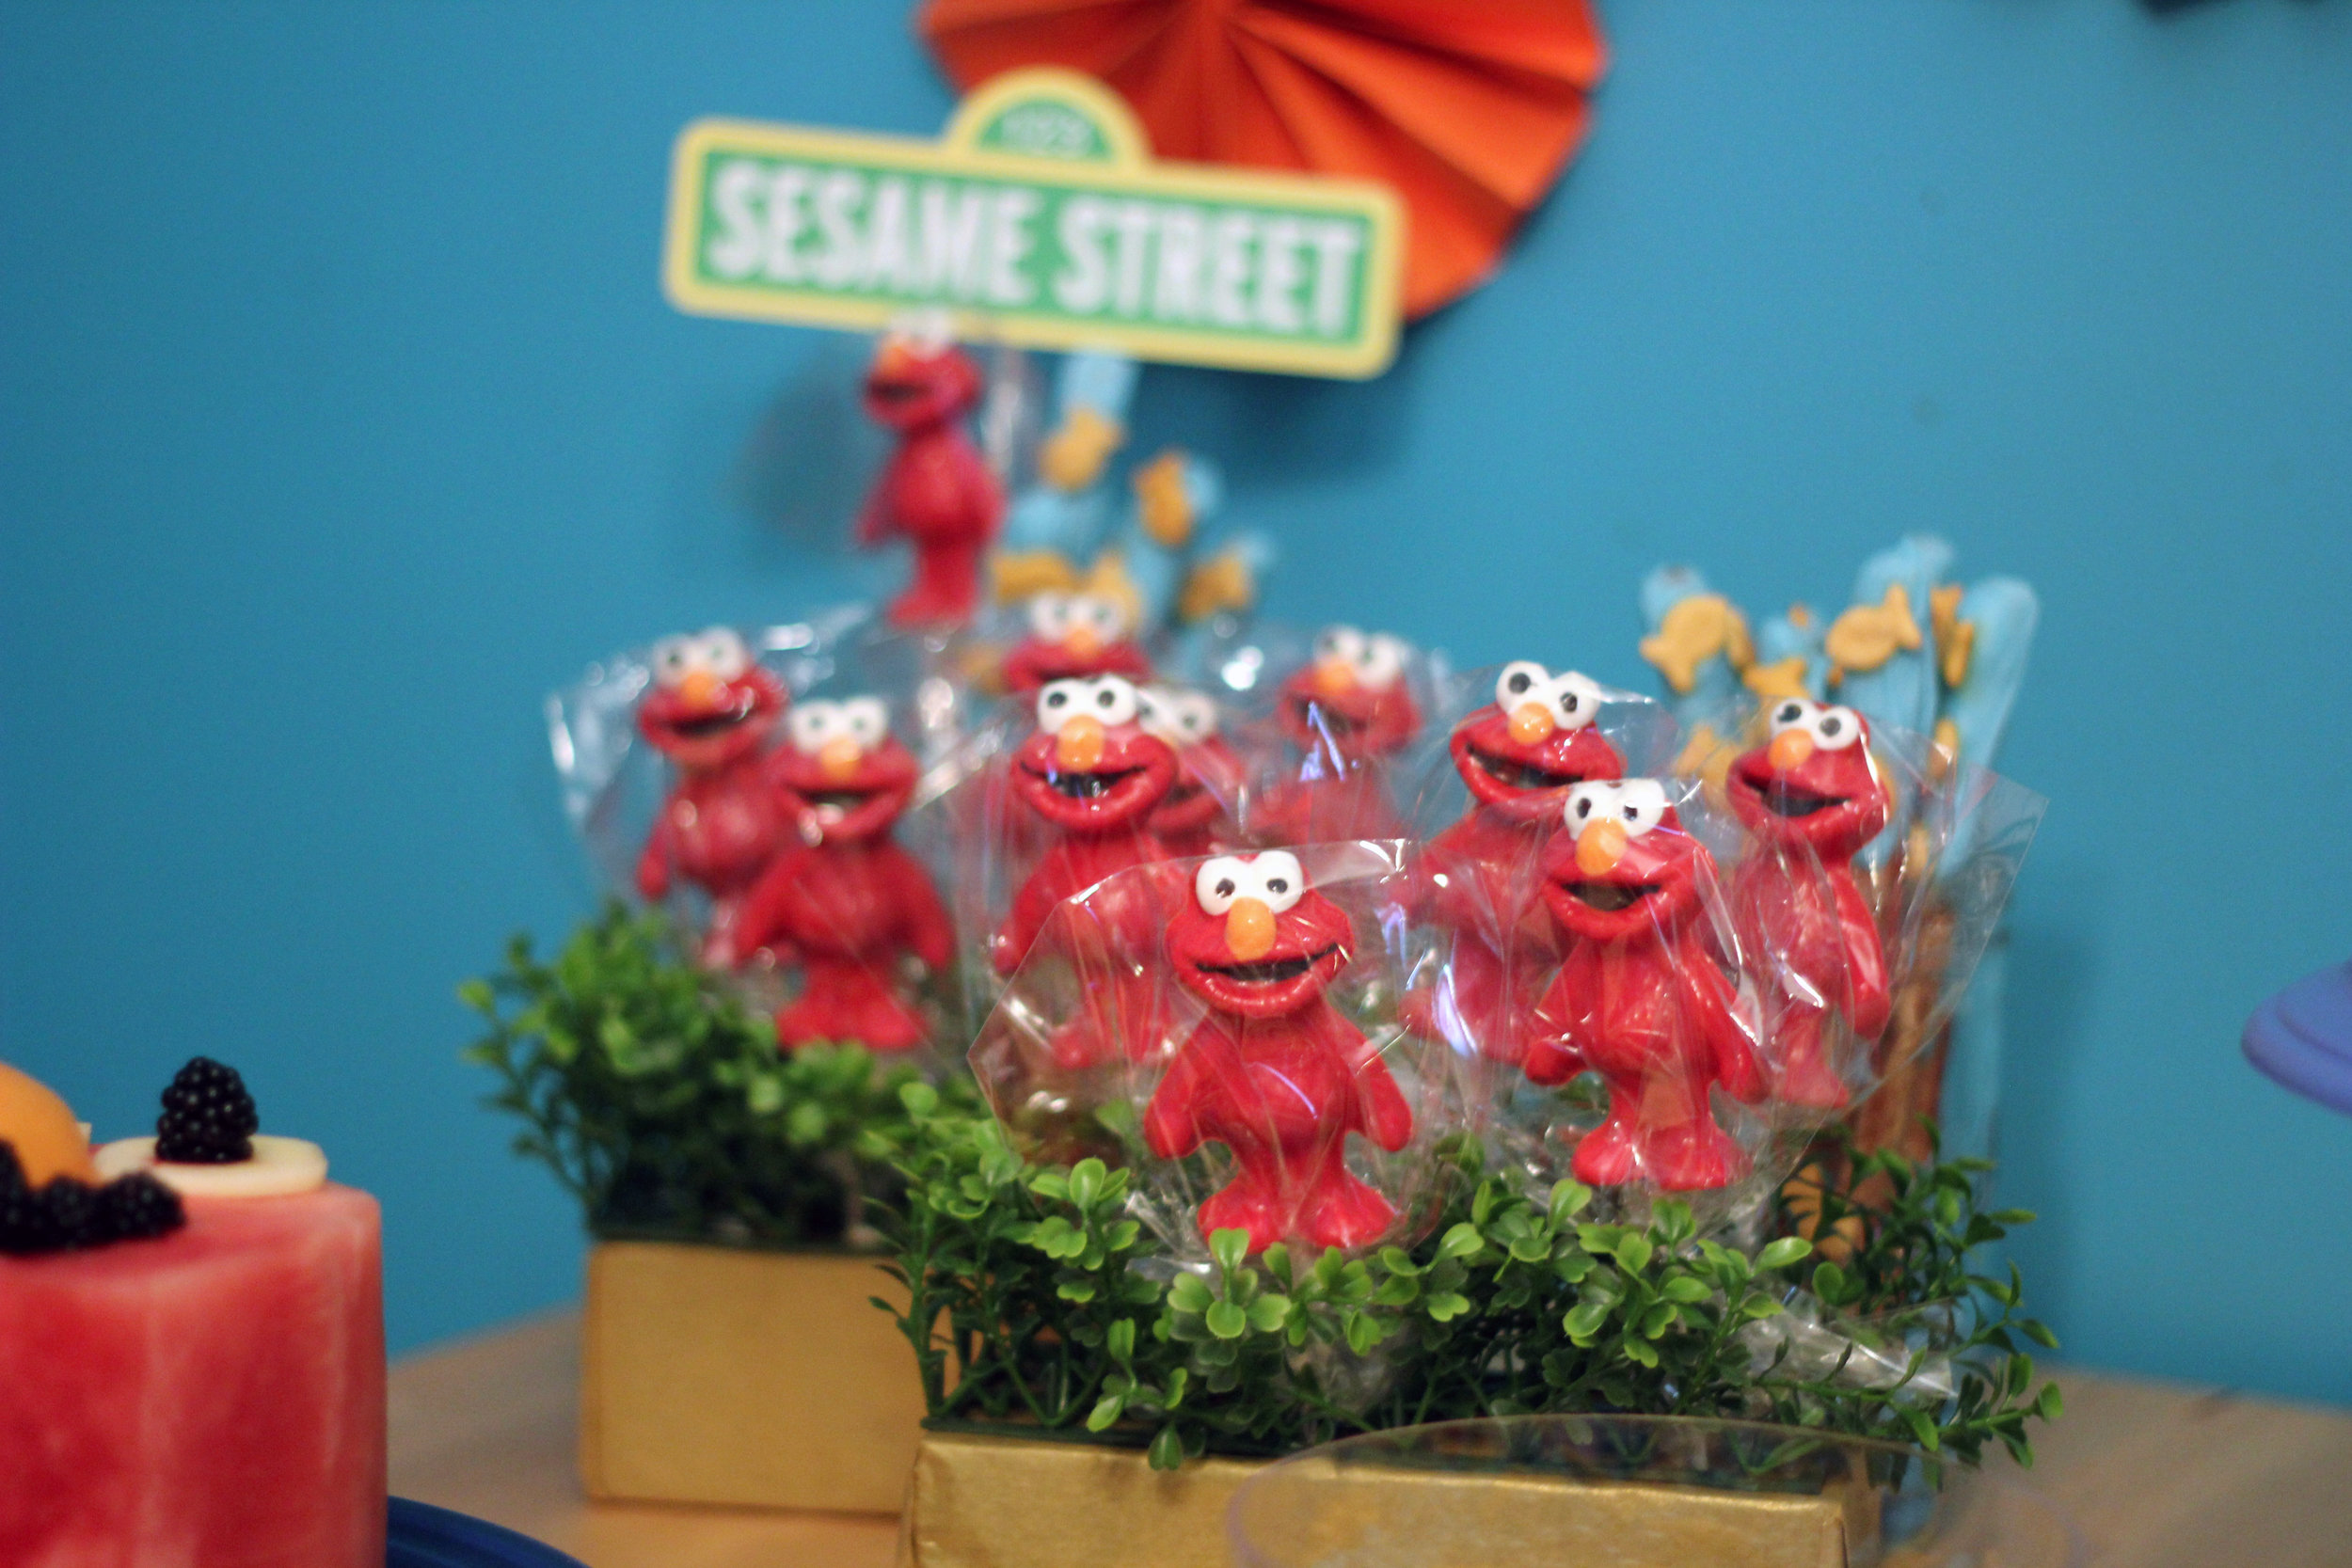 Chocolate Elmo lollipops